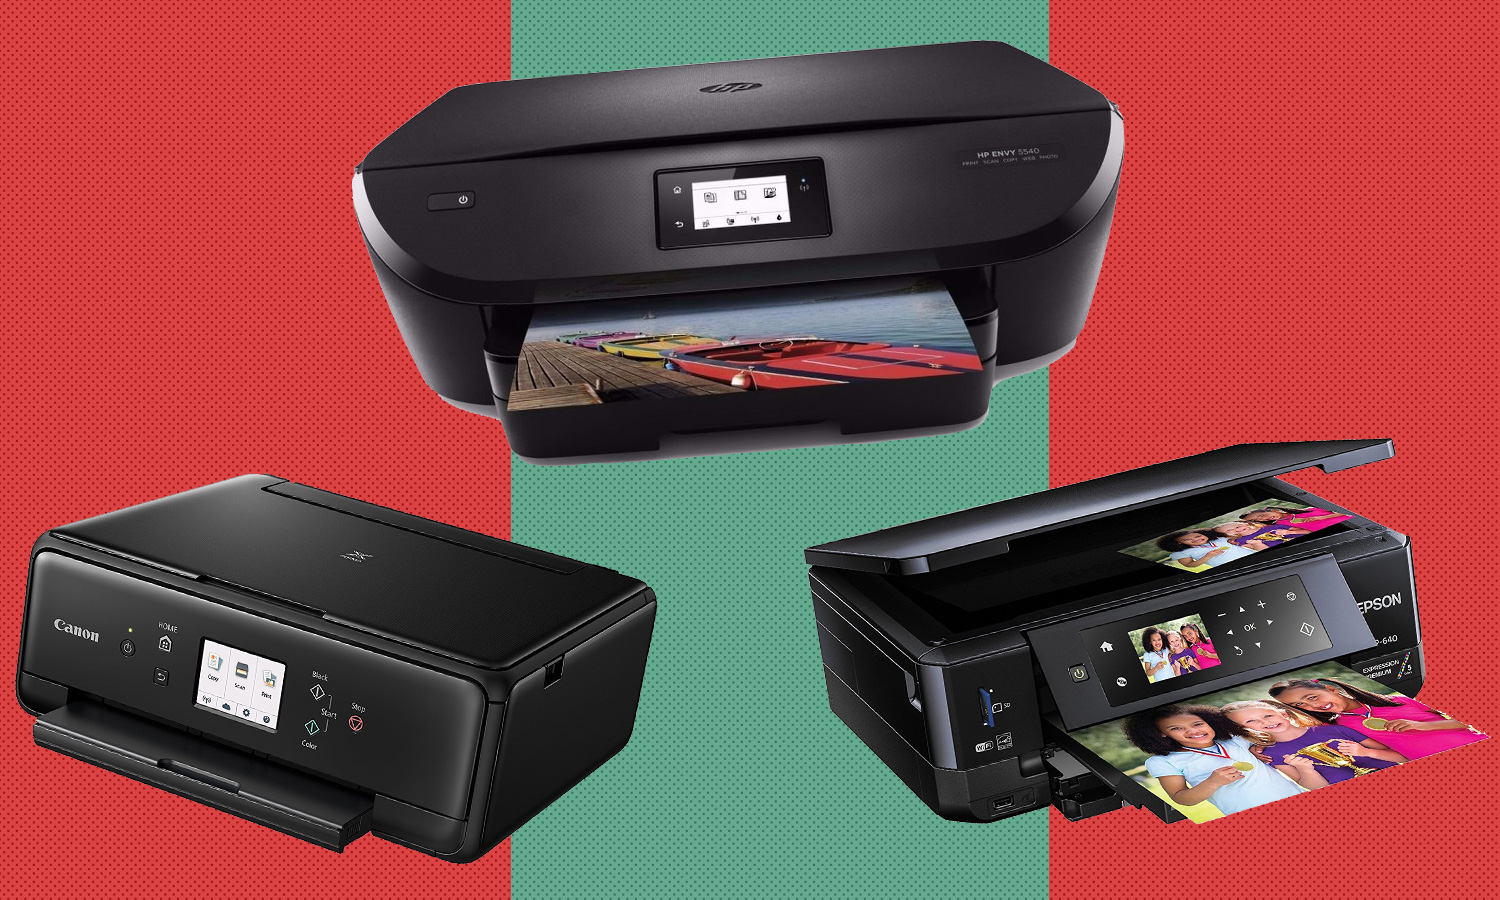 Epson Vs  Canon Vs  HP Printers: Who Makes the Best All-in